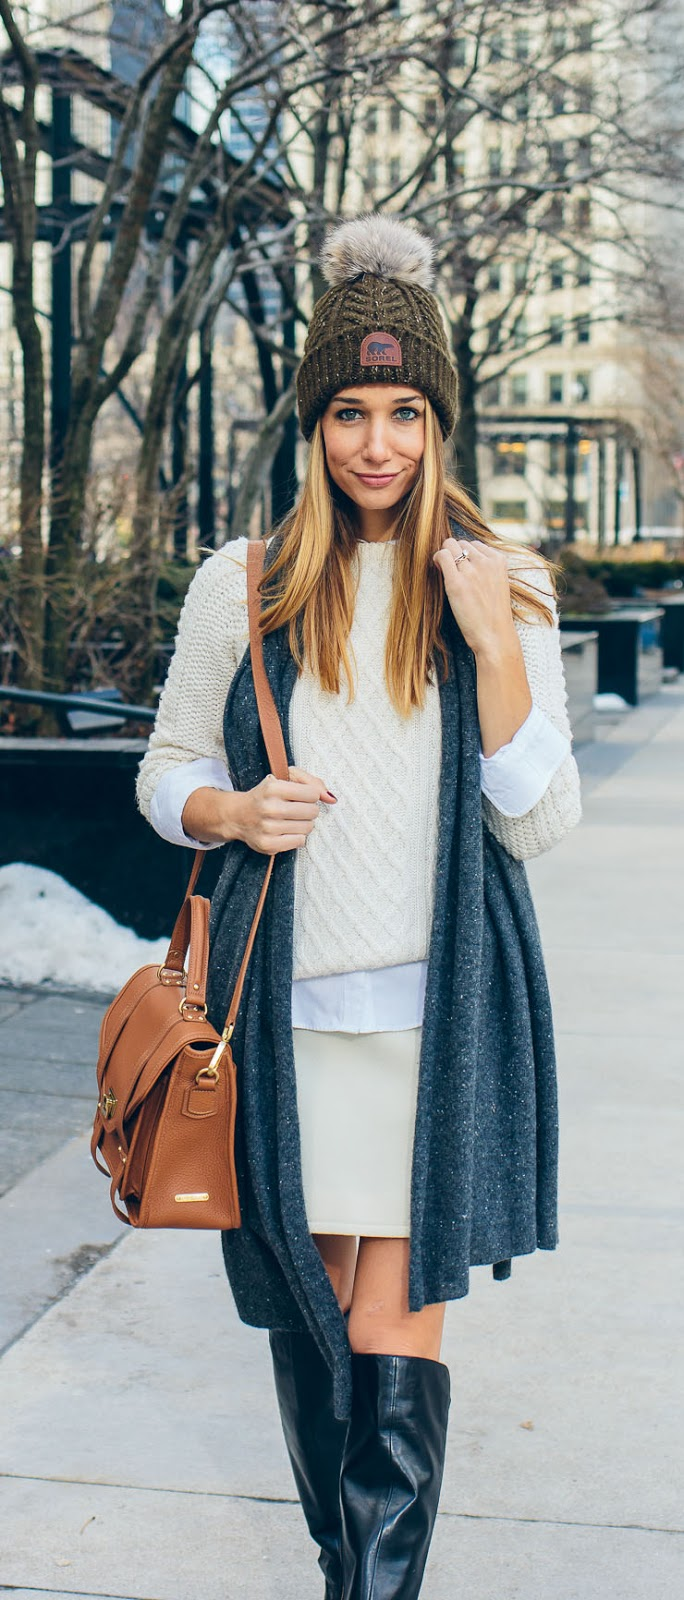 Easy Outfit Ideas To Try This Winter #WinterOutfits